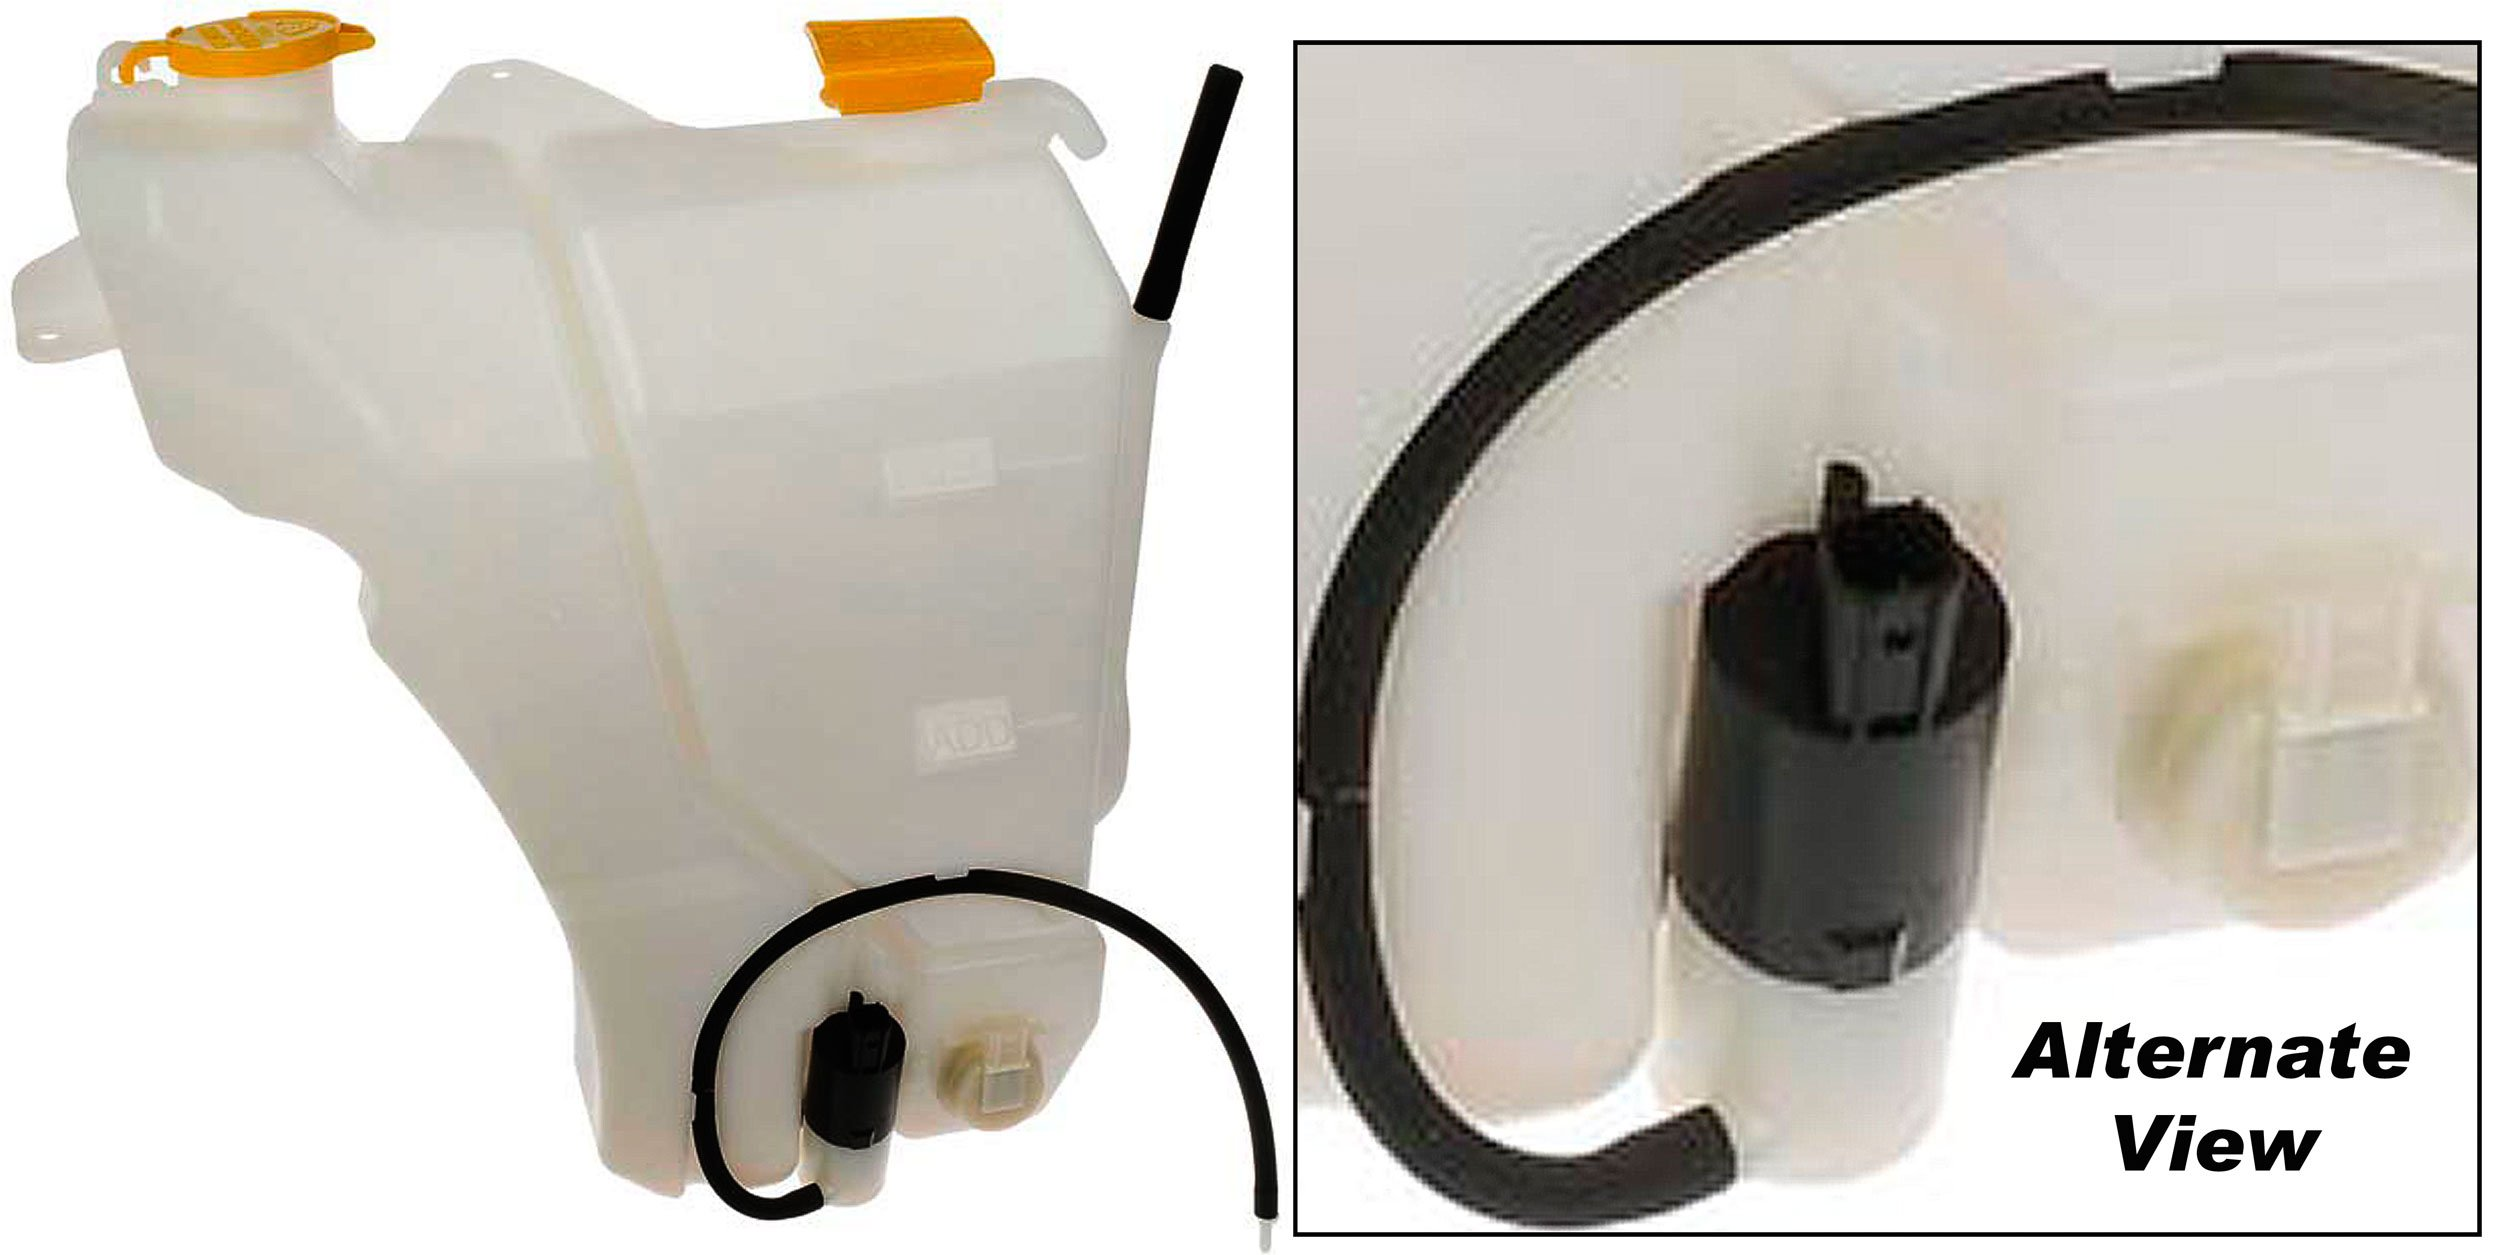 APDTY 714103 Dual Coolant Reservoir & Windshield Washer Fluid Bottle With Washer Pump Fits Select Dodge Ram 1500, 2500, 3500 Trucks; See Description For Details (Replaces 5072595AA, 55056502AA)